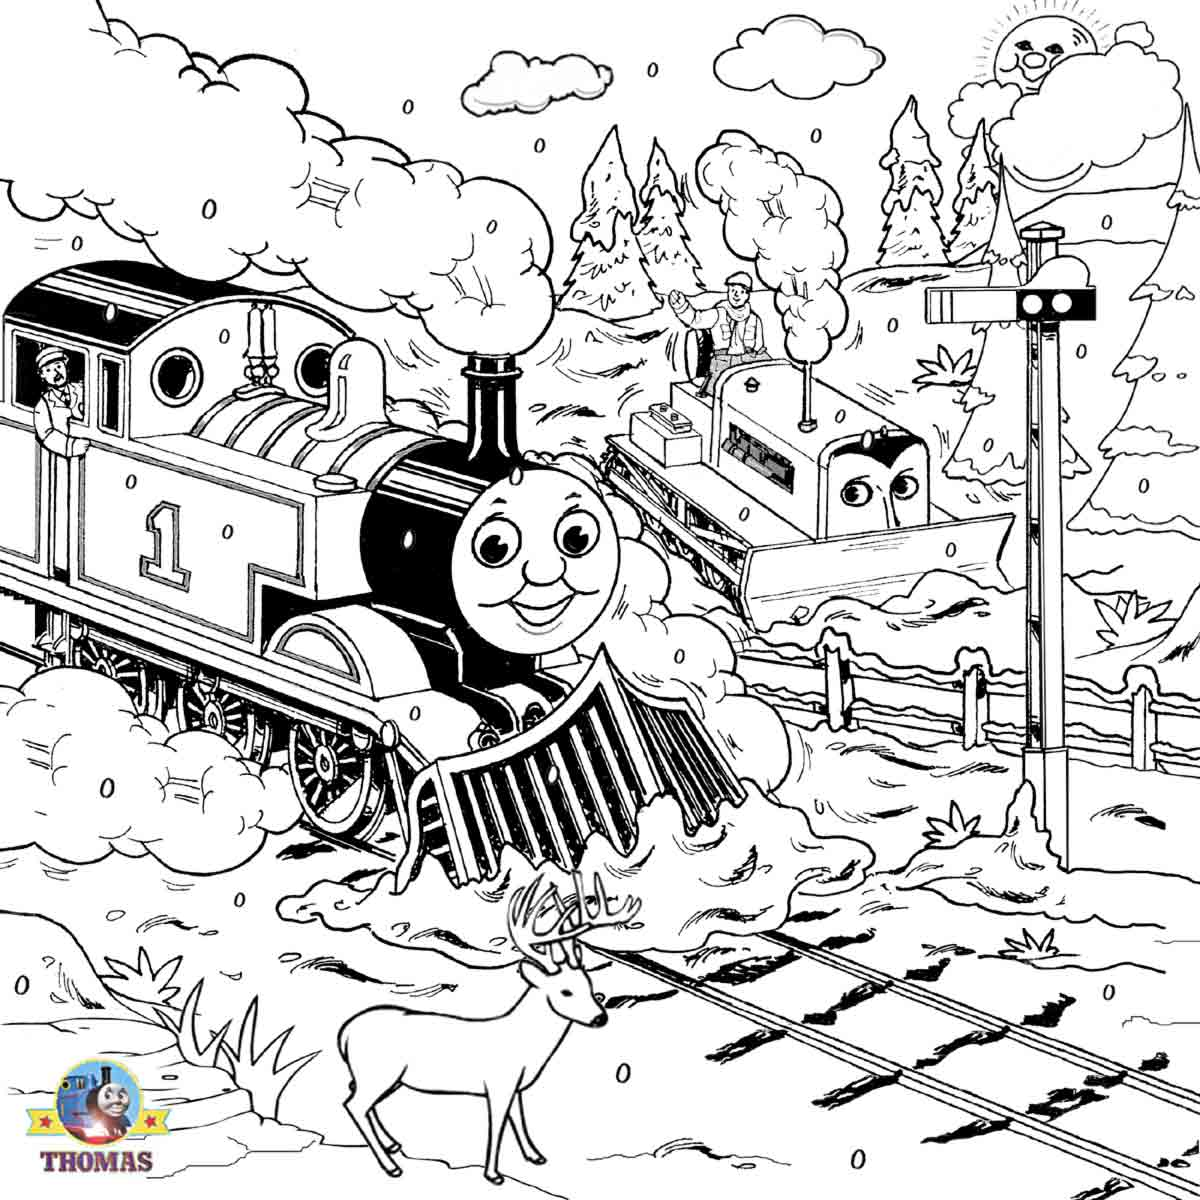 printable train coloring pages train coloring pages download and print train coloring pages coloring train pages printable